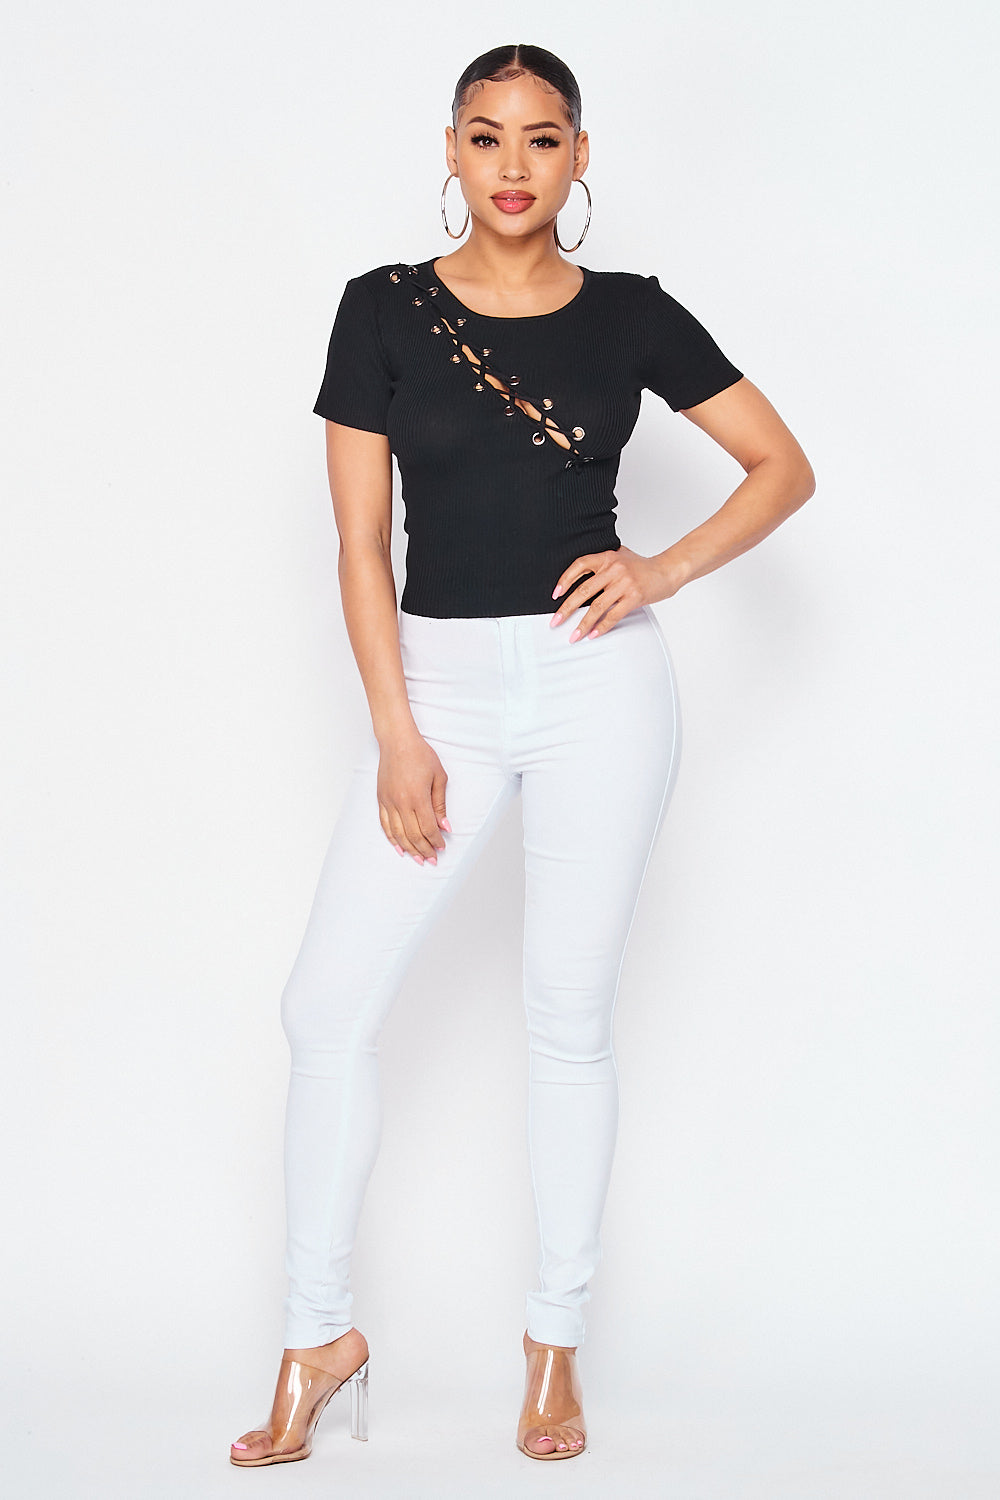 Ribbed Short Sleeve Lace Up Front Knit Top In Black